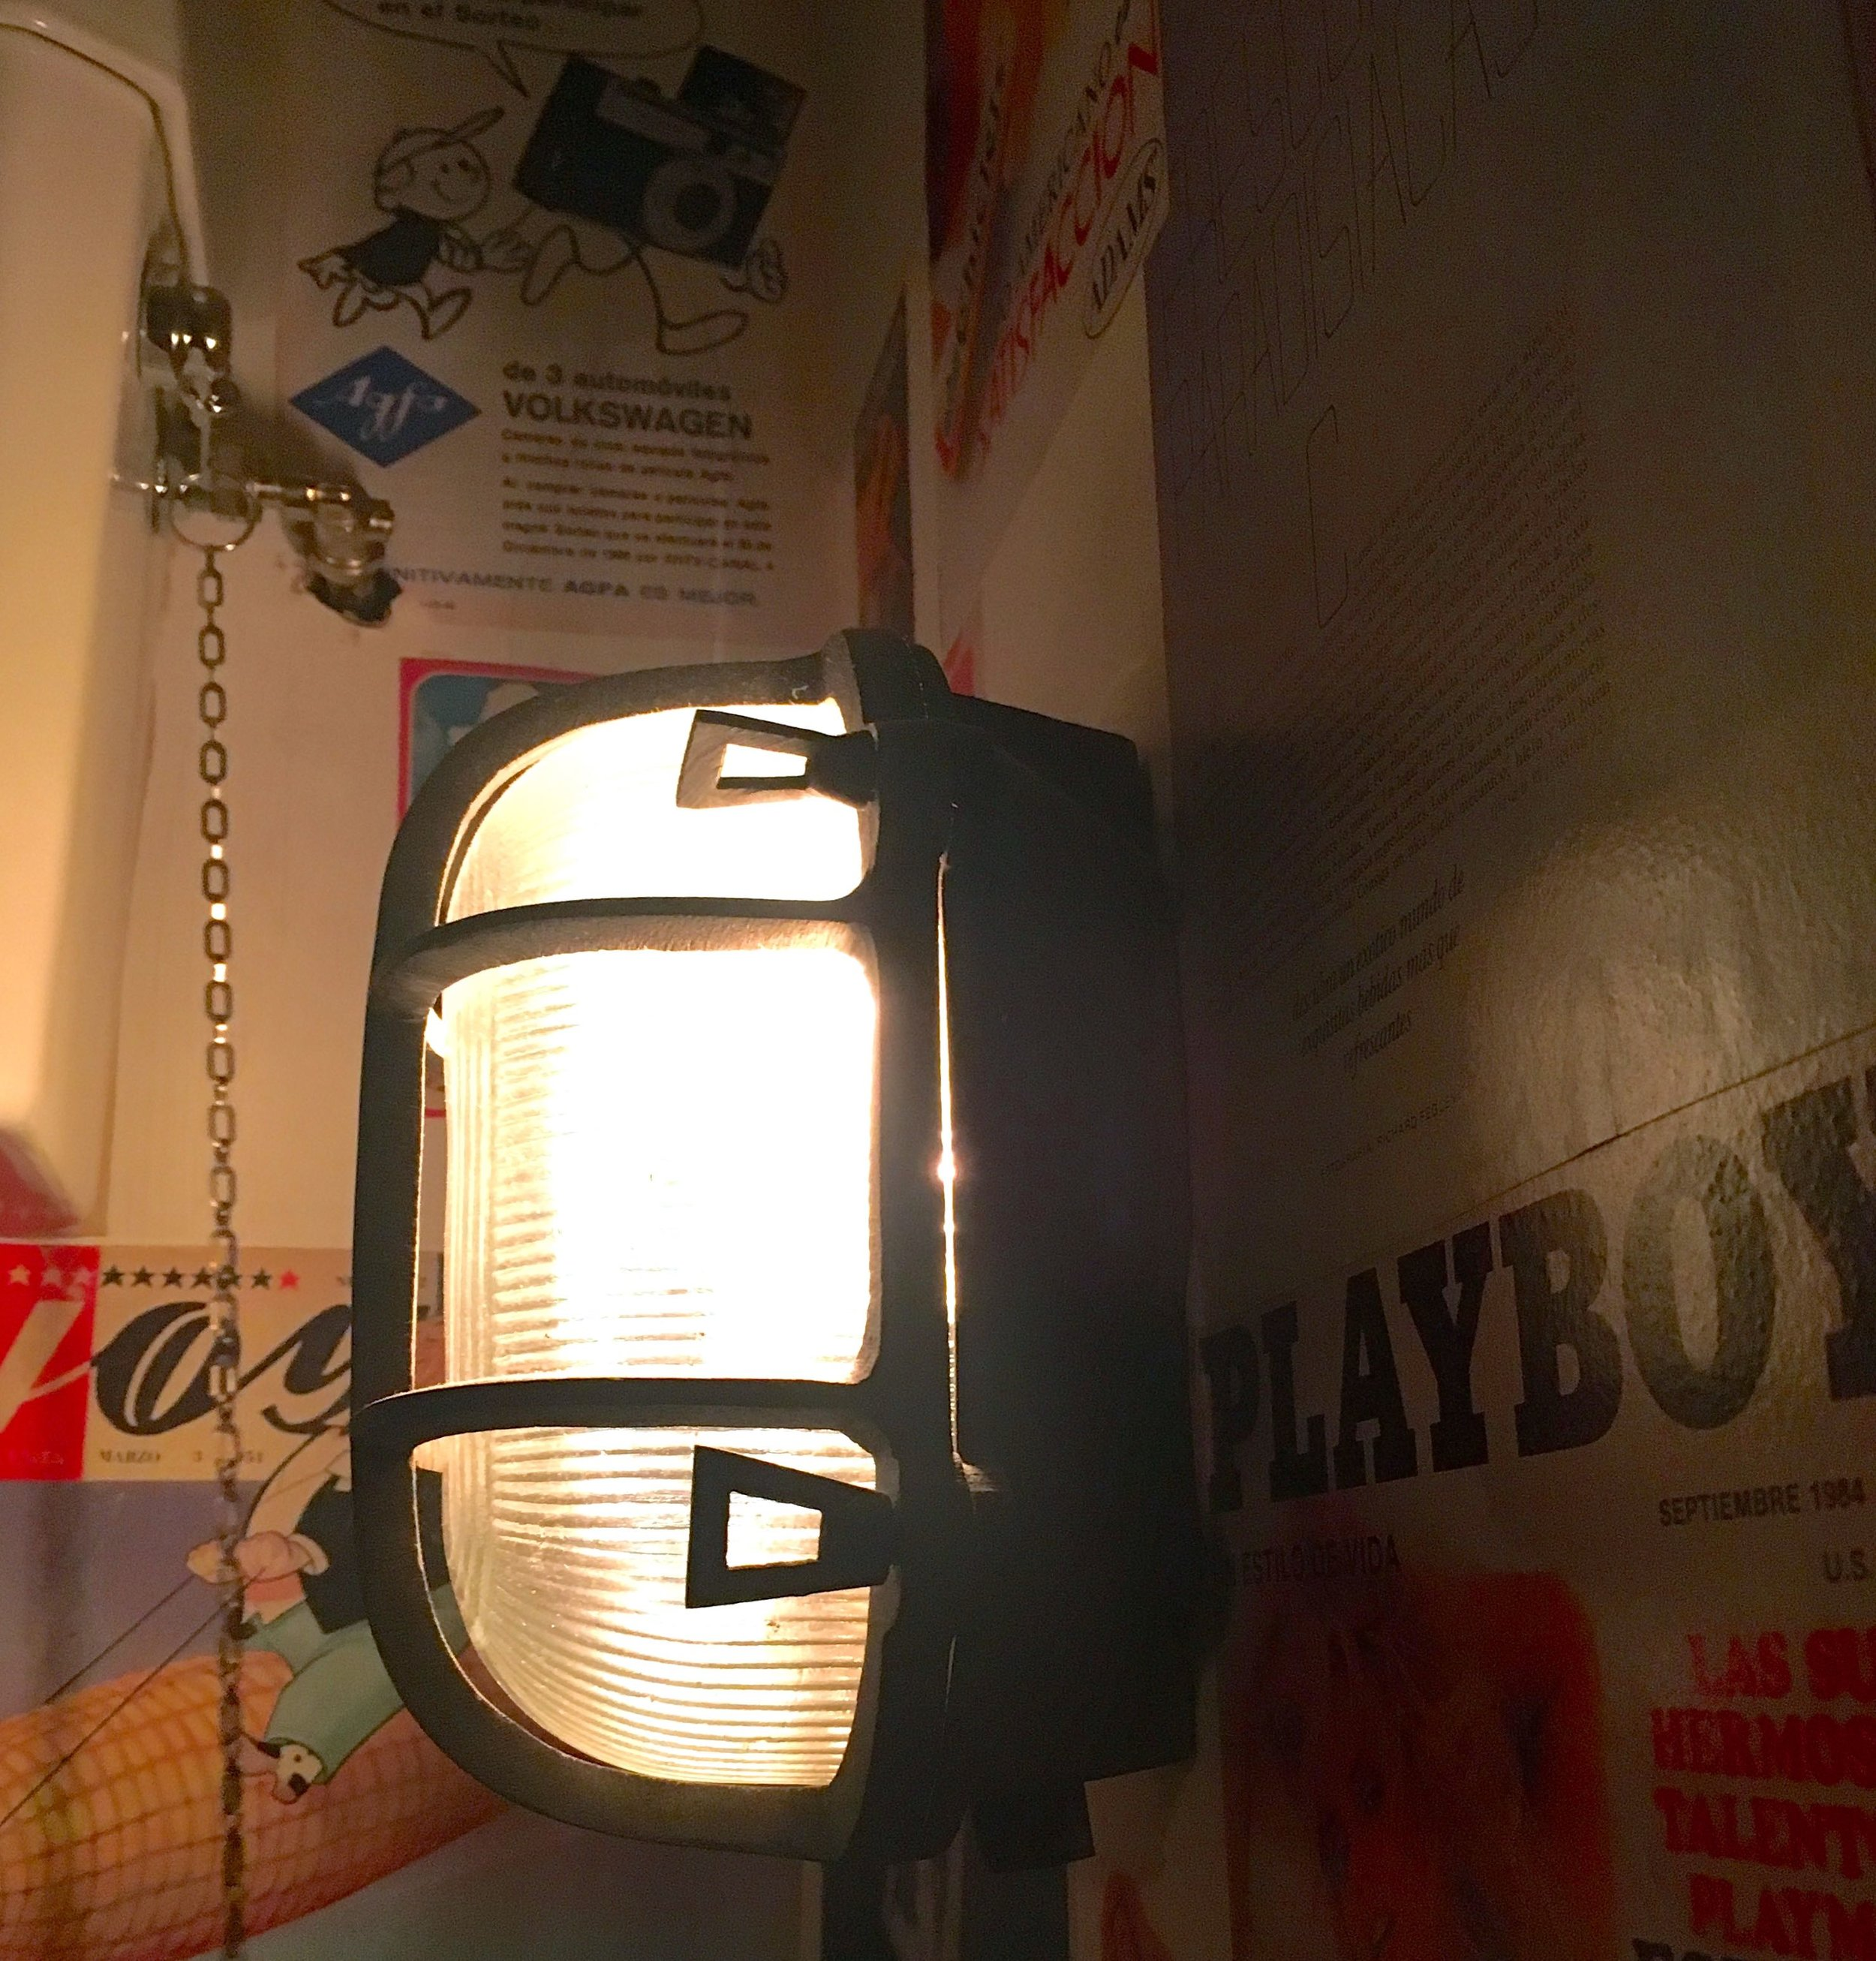 Industrial lighting and magazine covers in the El Pastor loos at Borough Market